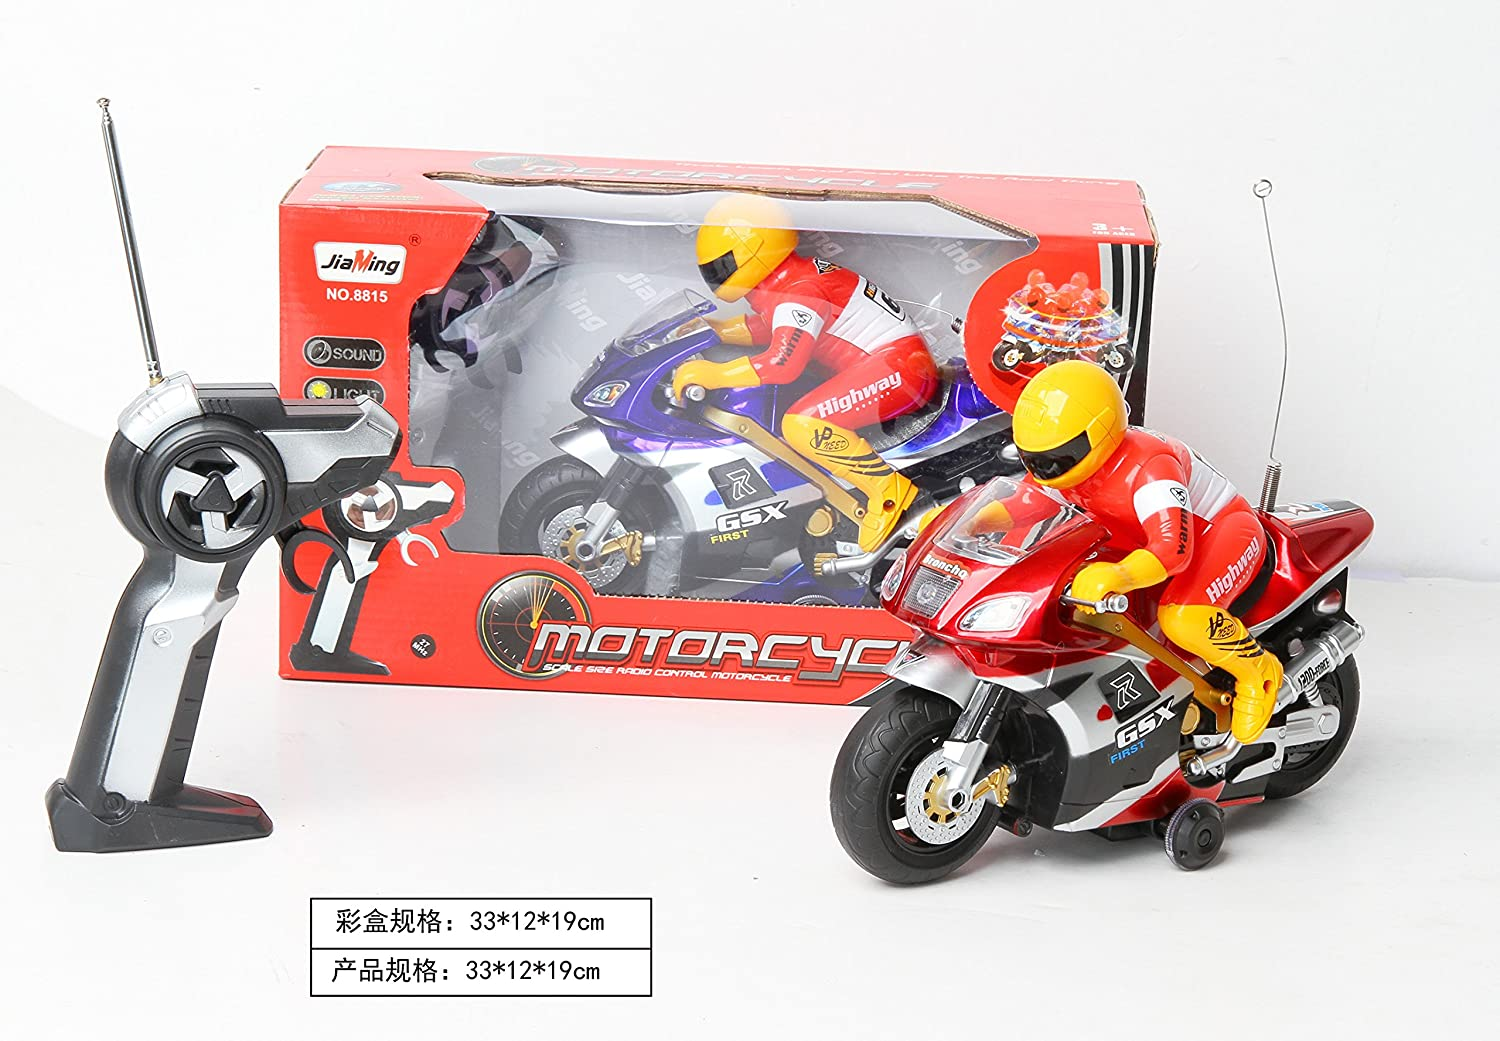 Top 10 Best Remote Control Motorcycles (2020 Reviews & Buying Guide) 5